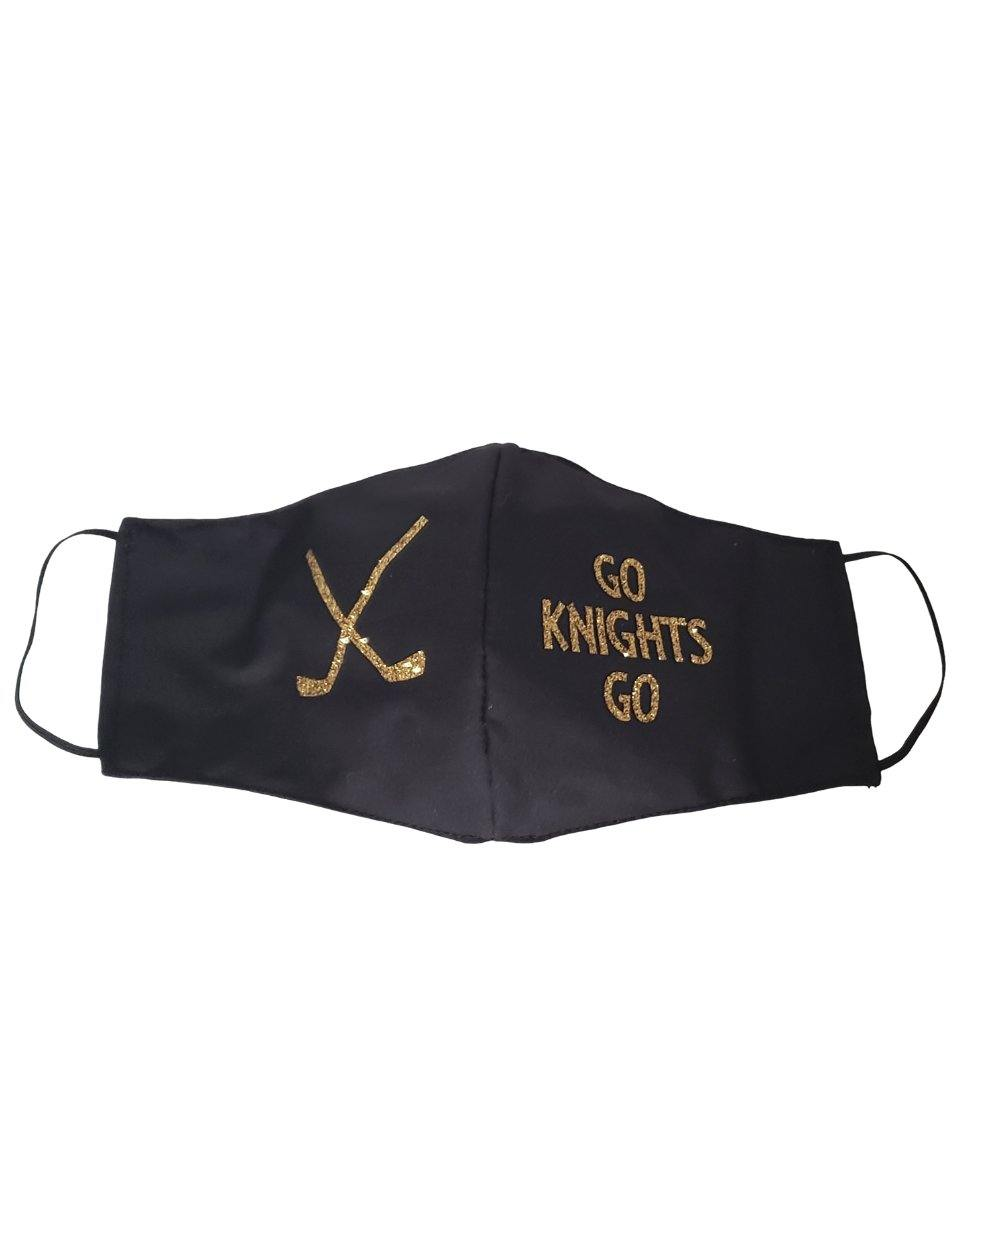 Go Knights Go VGK Face Mask